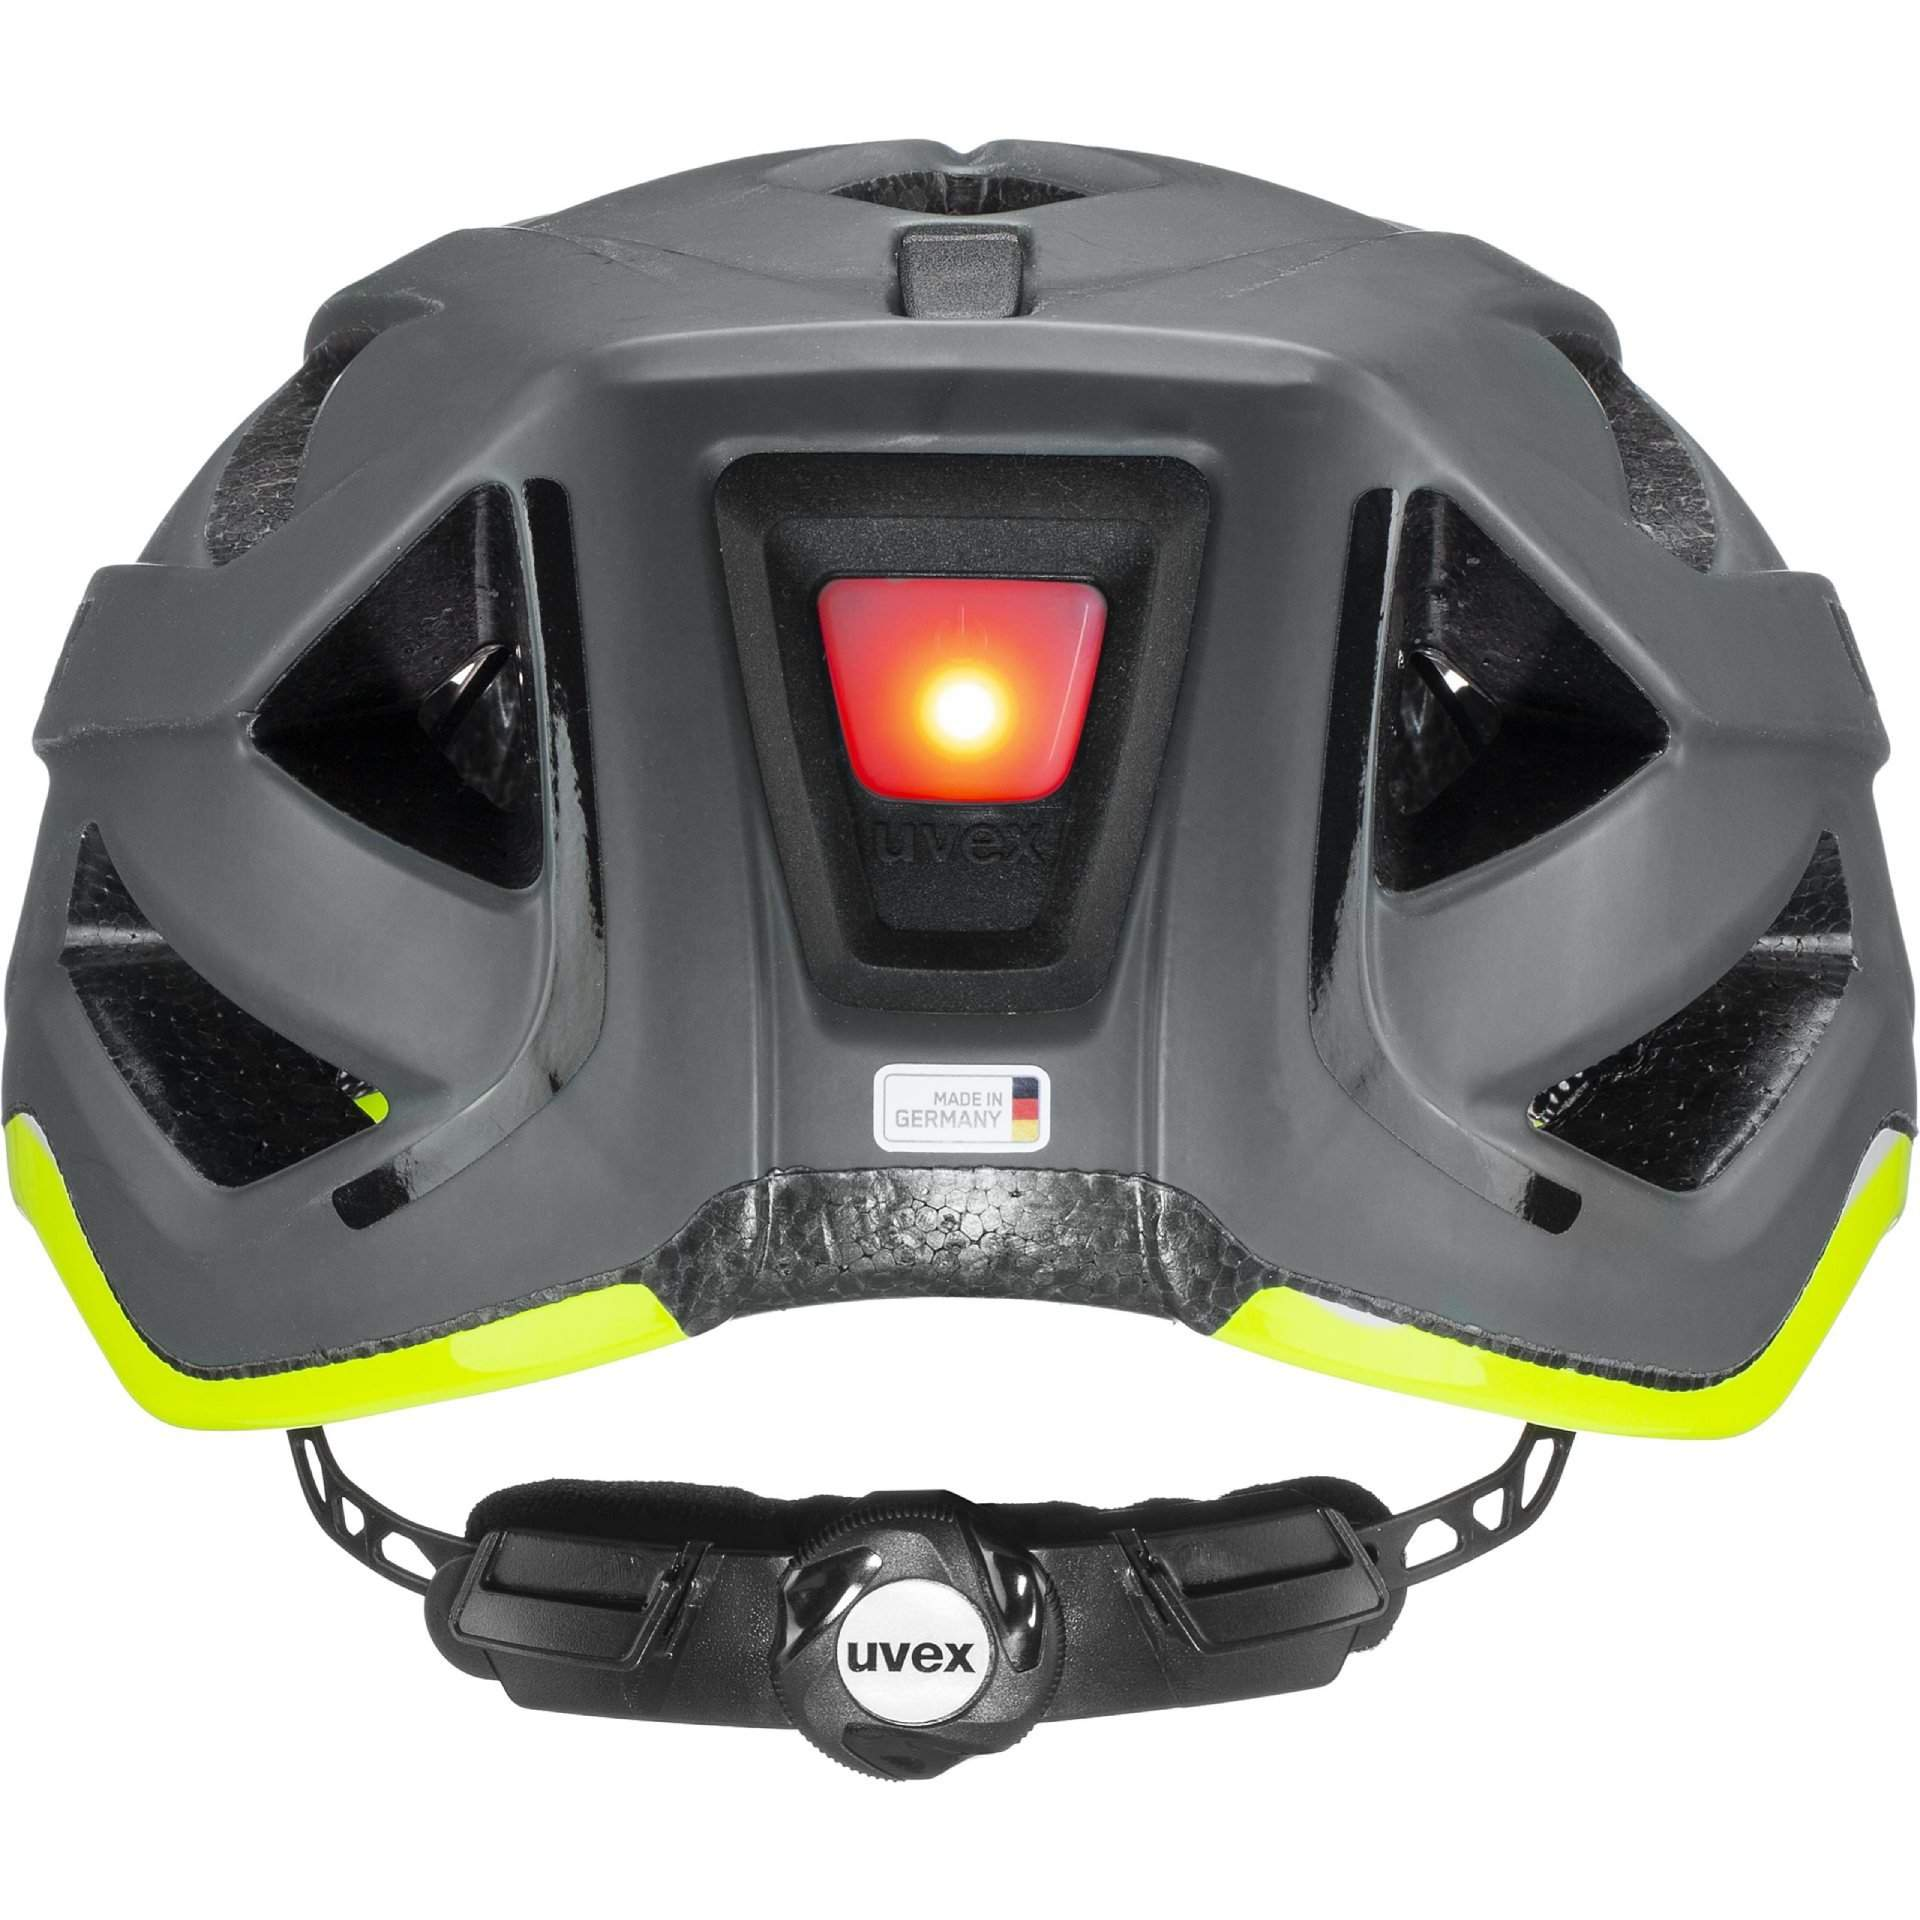 KASK ROWEROWY UVEX CITY ACTIVE 41|0|428|08 ANTHRAZIT|LIME MAT Z LAMPKĄ